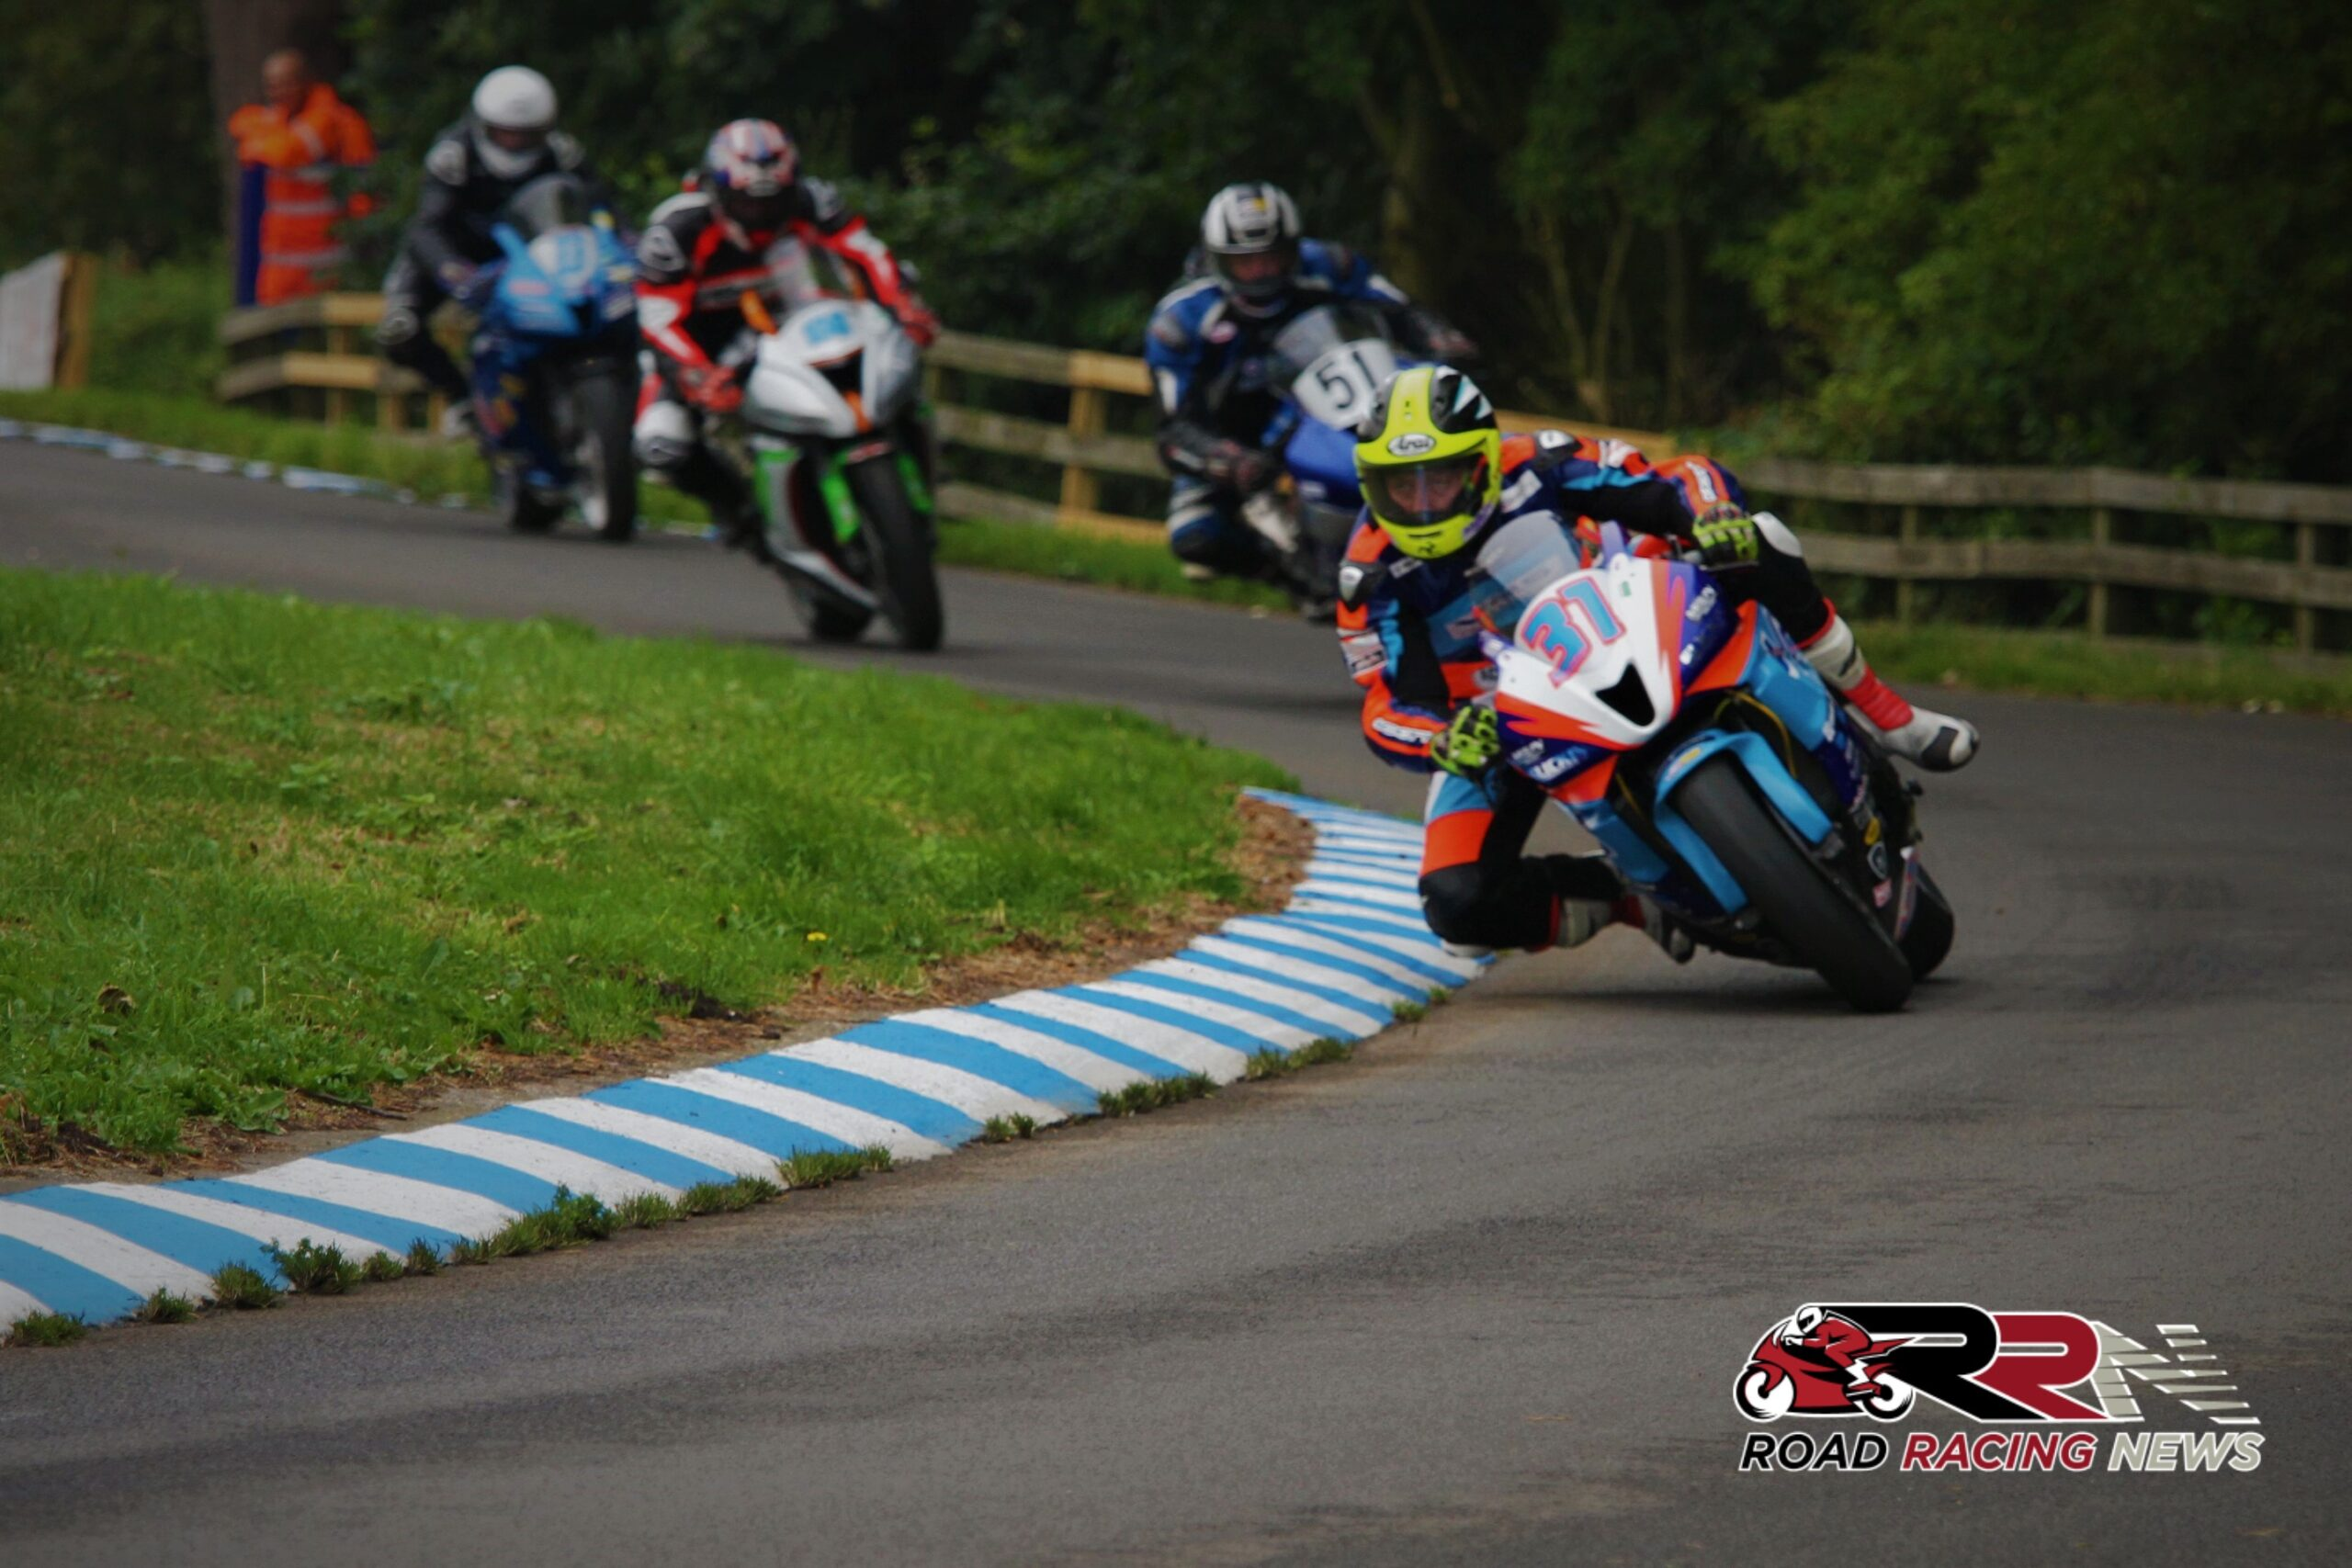 Barry Sheene Classic – News From The Paddock